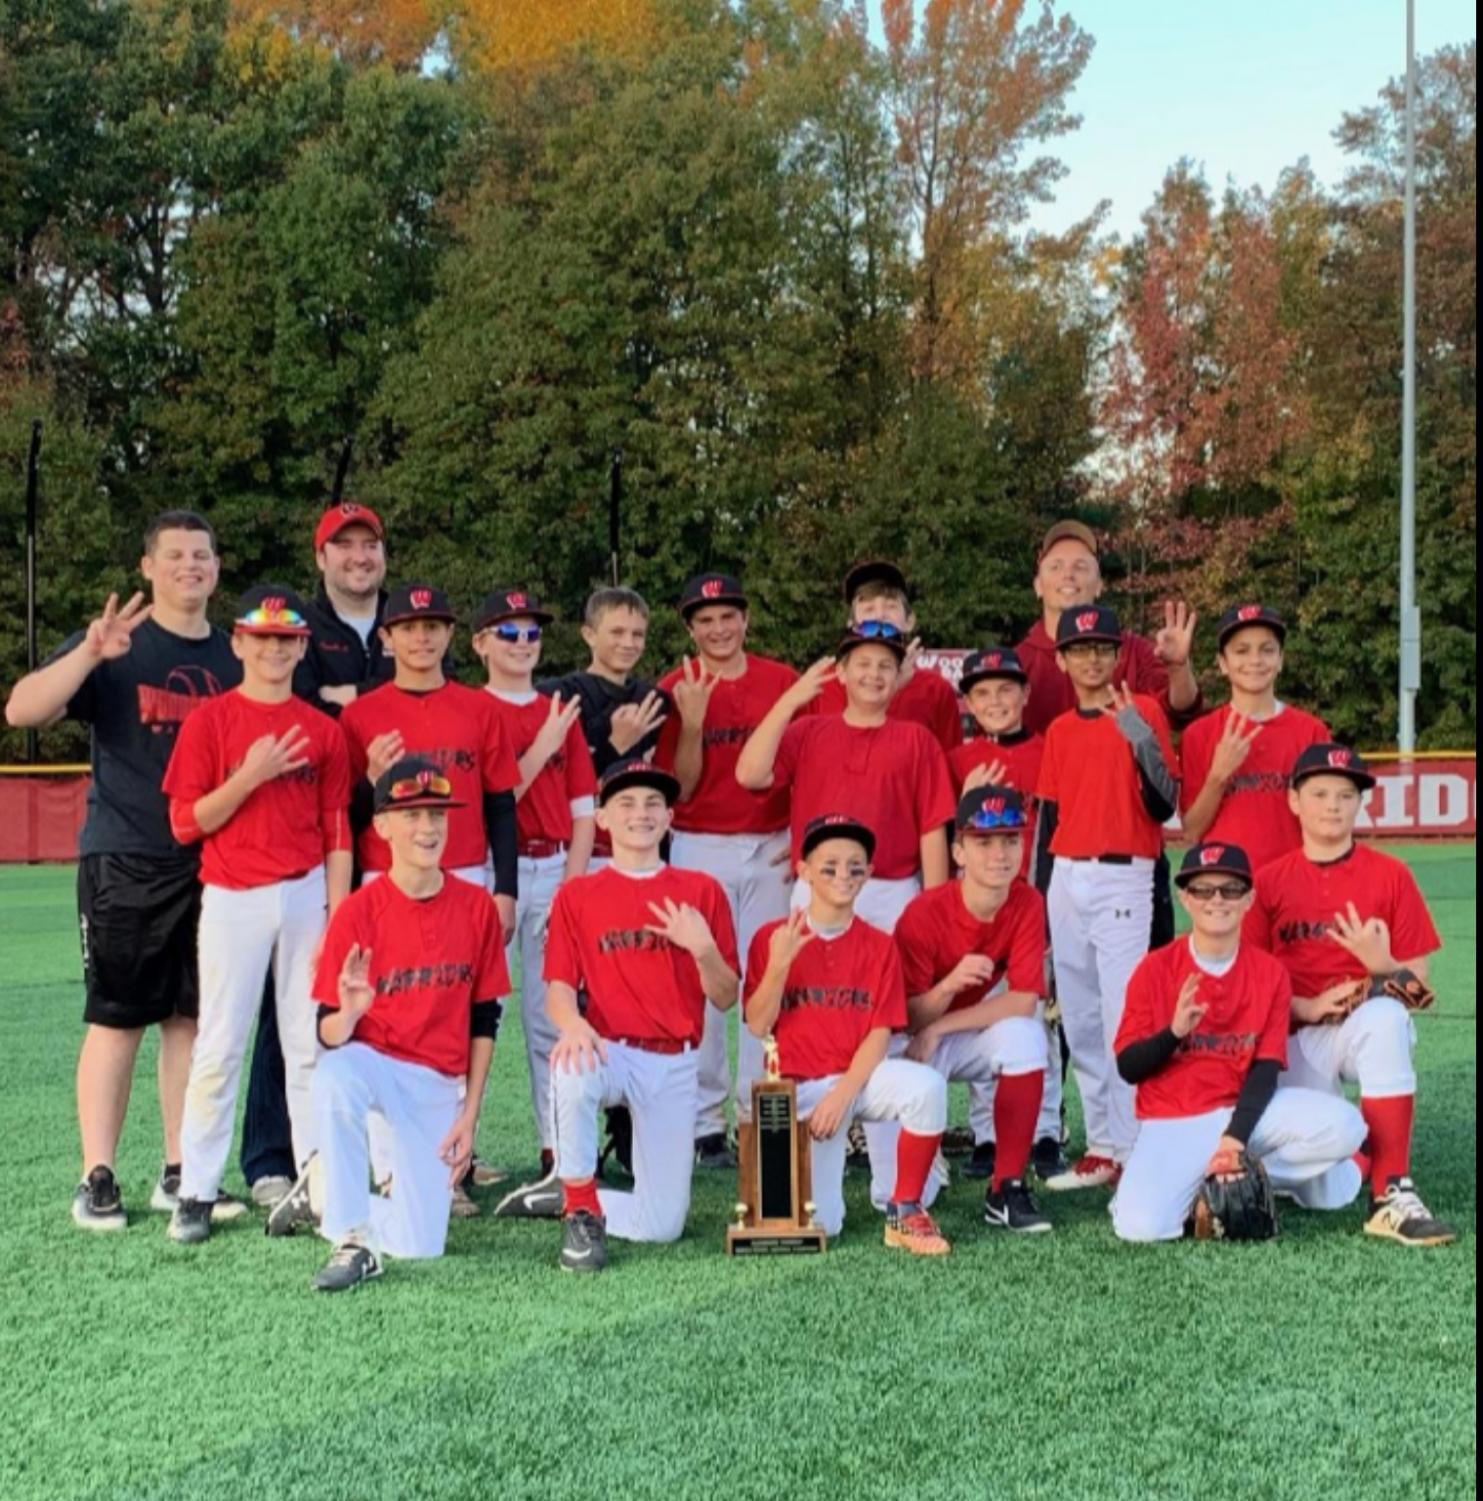 The Warriors celebrate after their 12-2 win over Colonia in the championship game